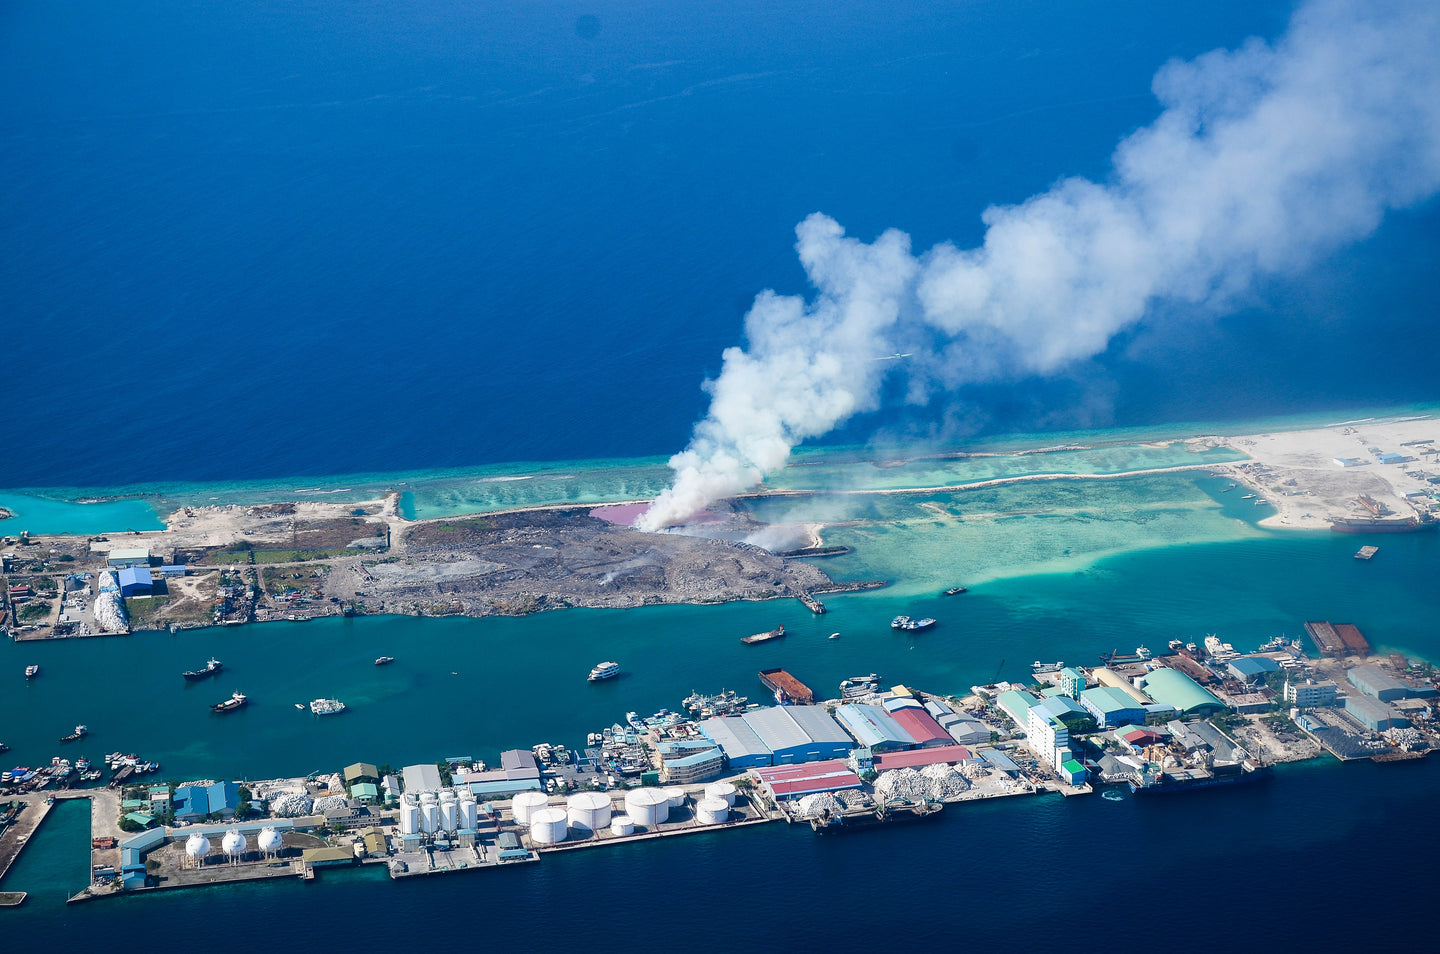 Aerial view of land blowing smoke - W-Photographie